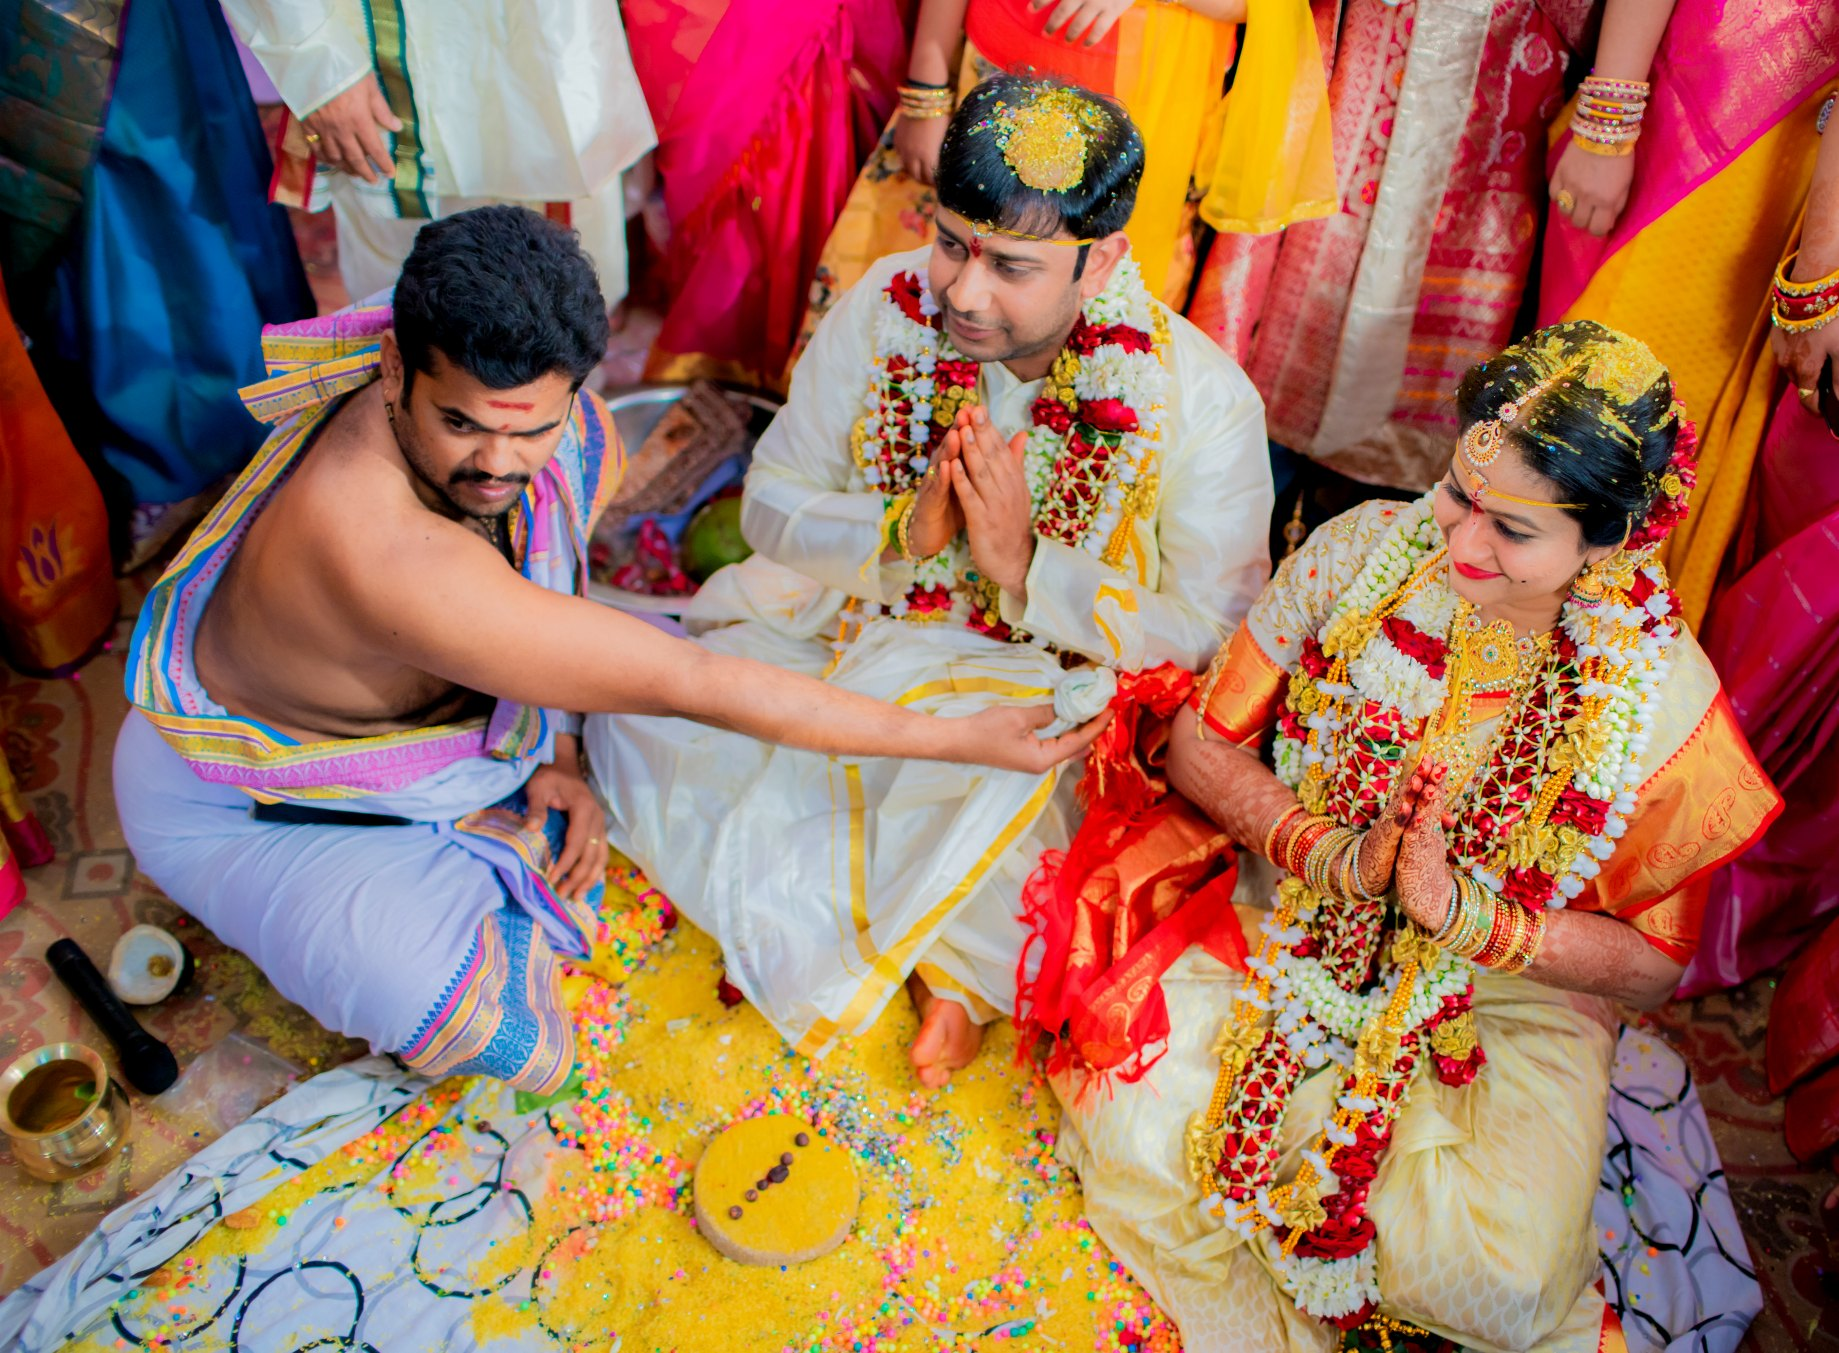 15 Hindu Telugu Rituals for your Traditional Indian Wedding Day featured by top US life and style blog, Dreaming Loud: Brahma Mudi